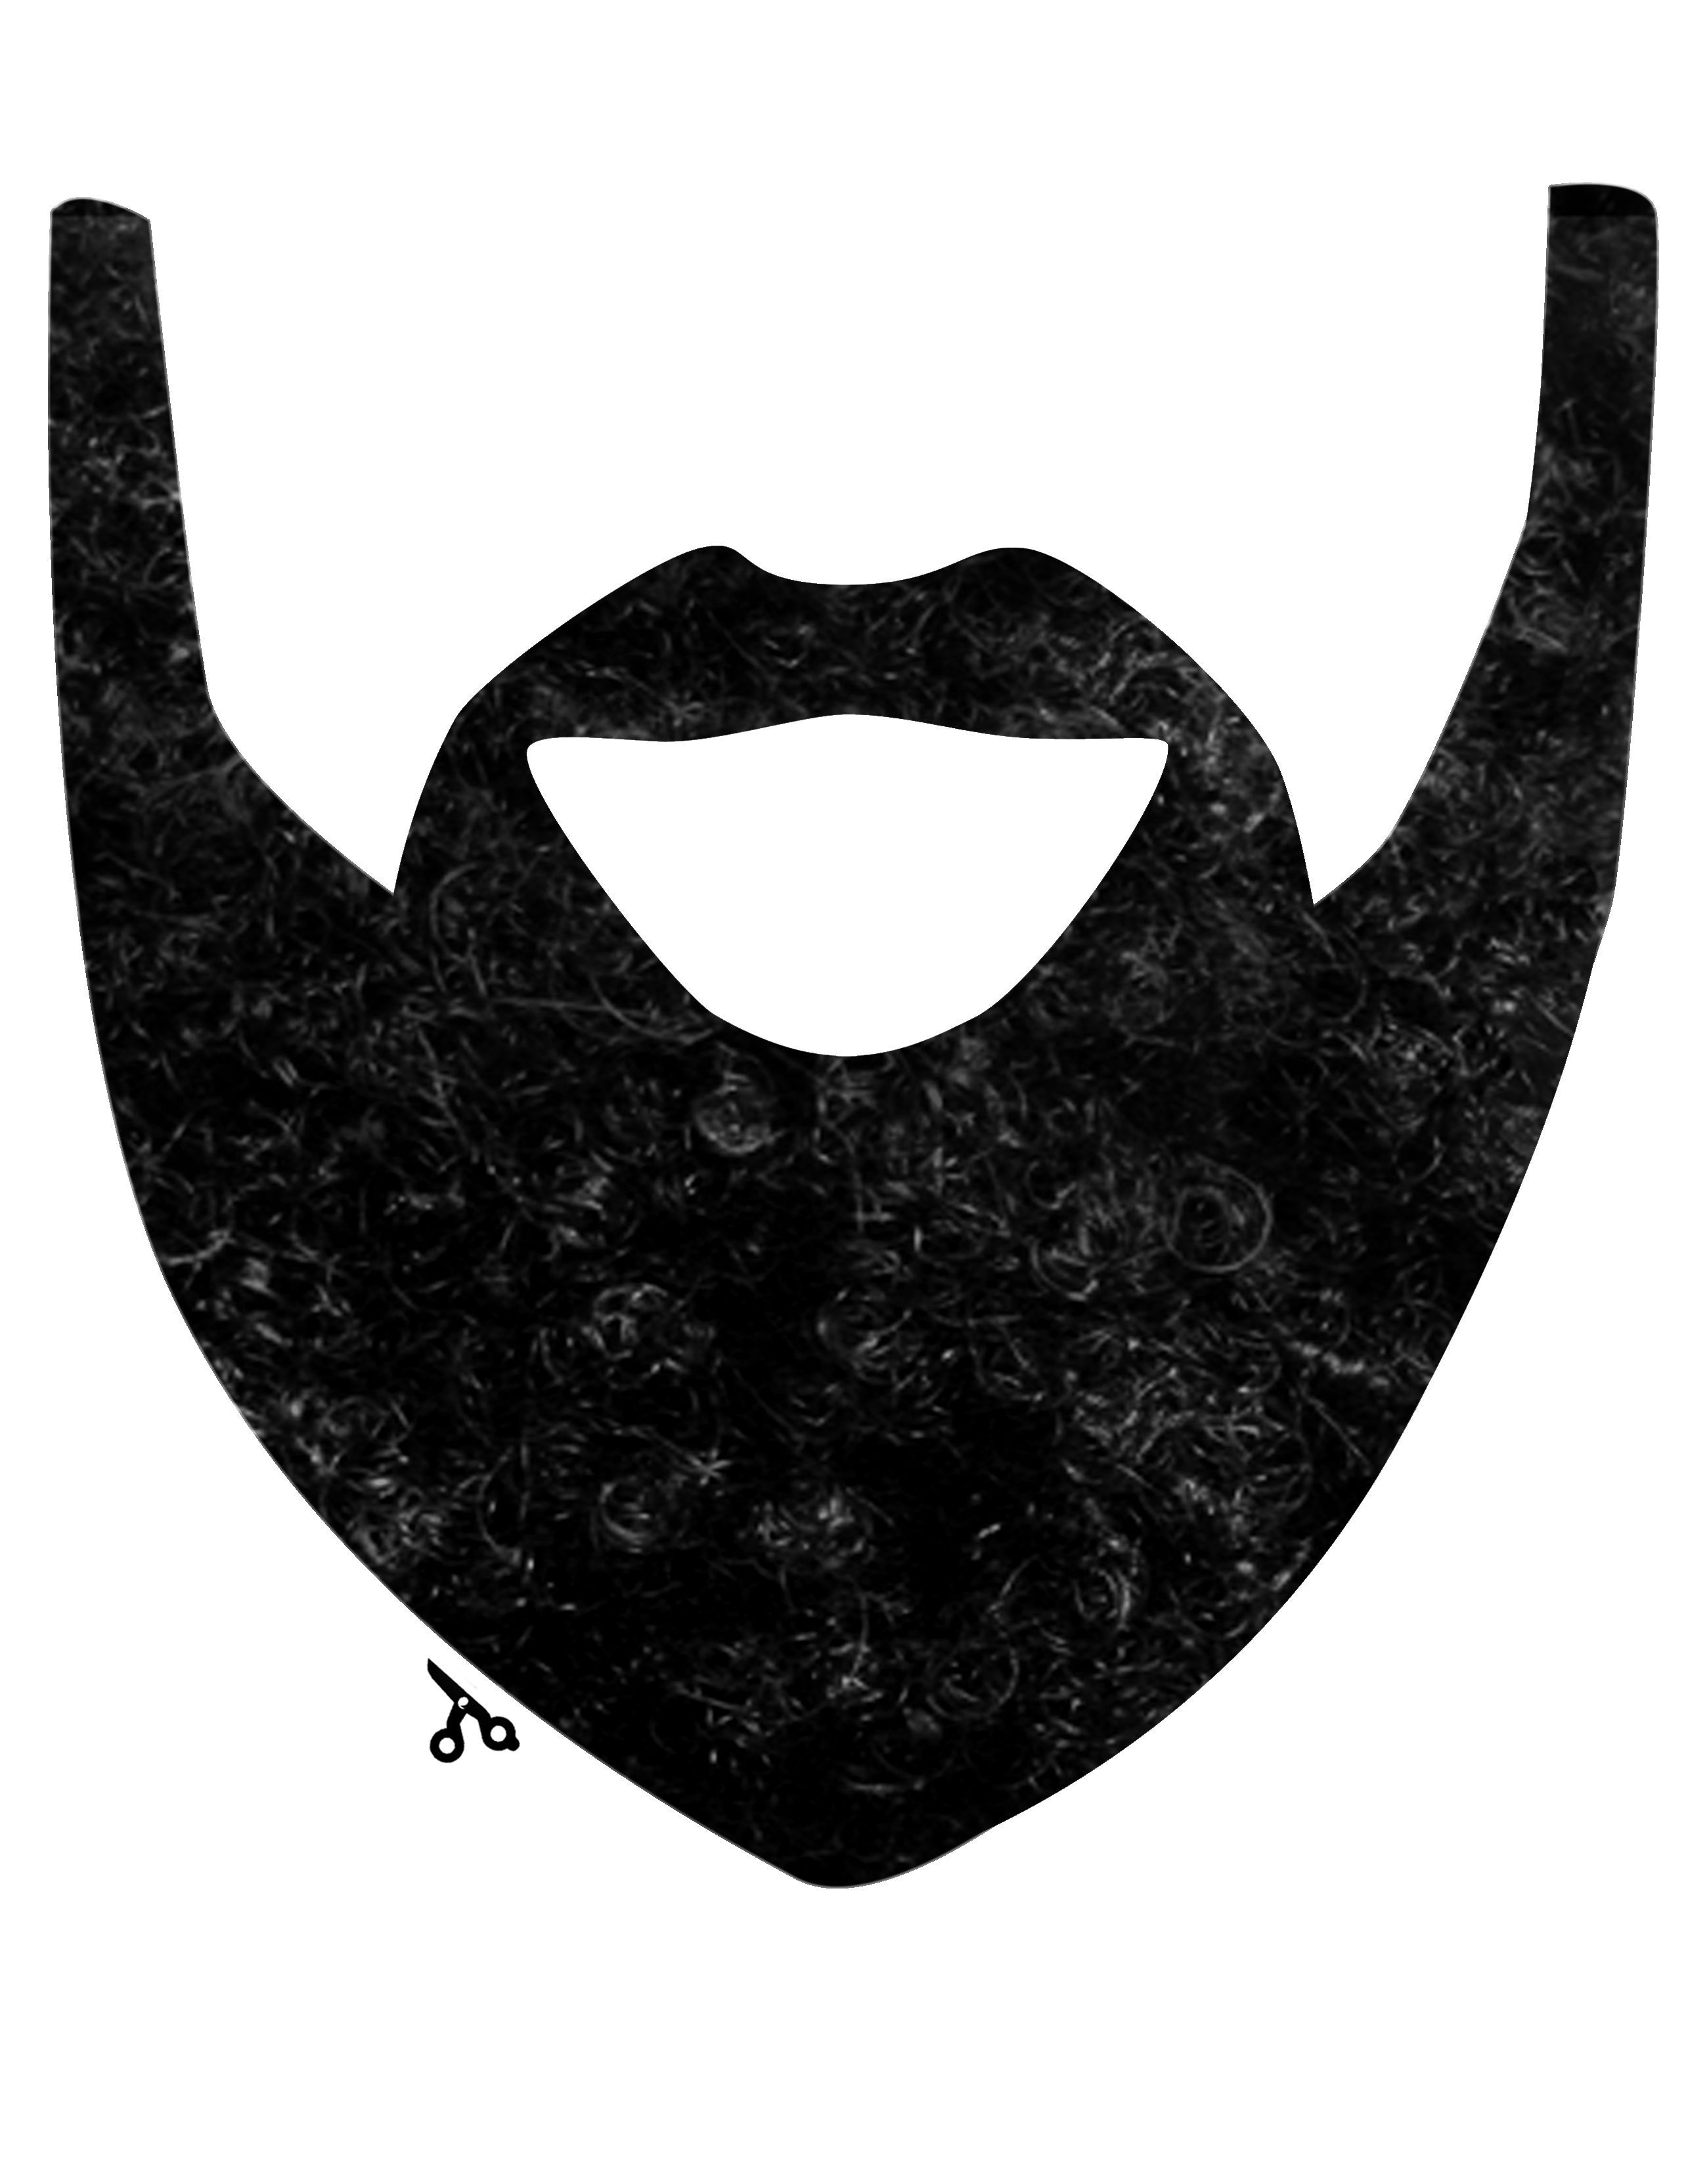 How To Make A Beard With Paper For Kids